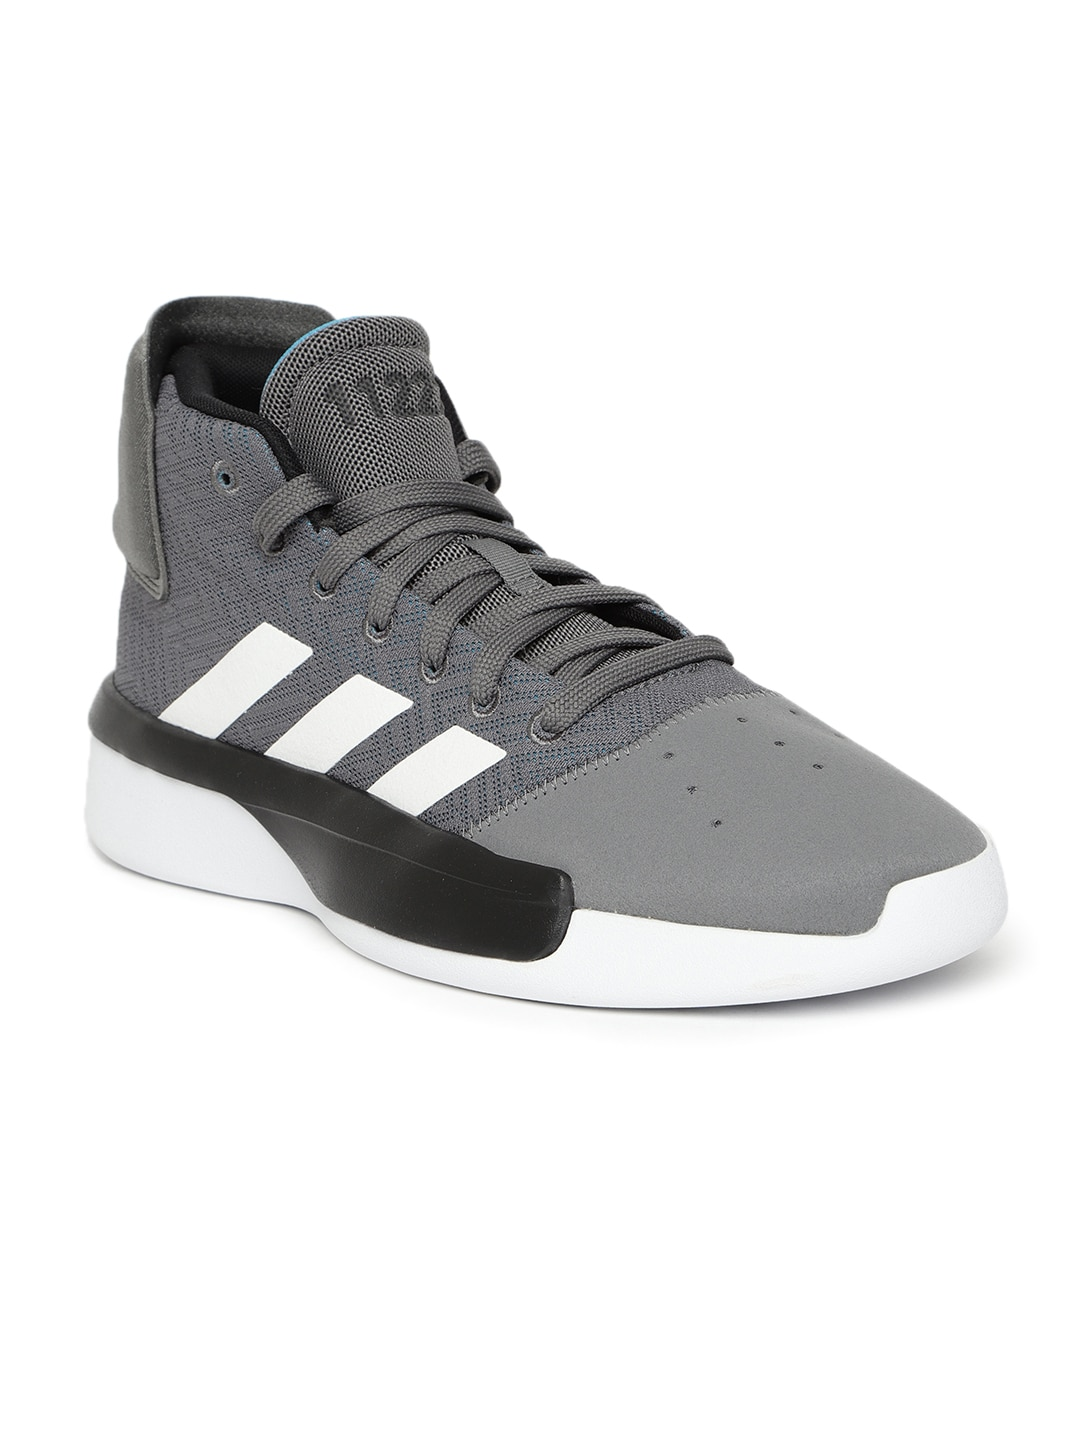 a89bf74a0c41c Adidas Basketball Shoes